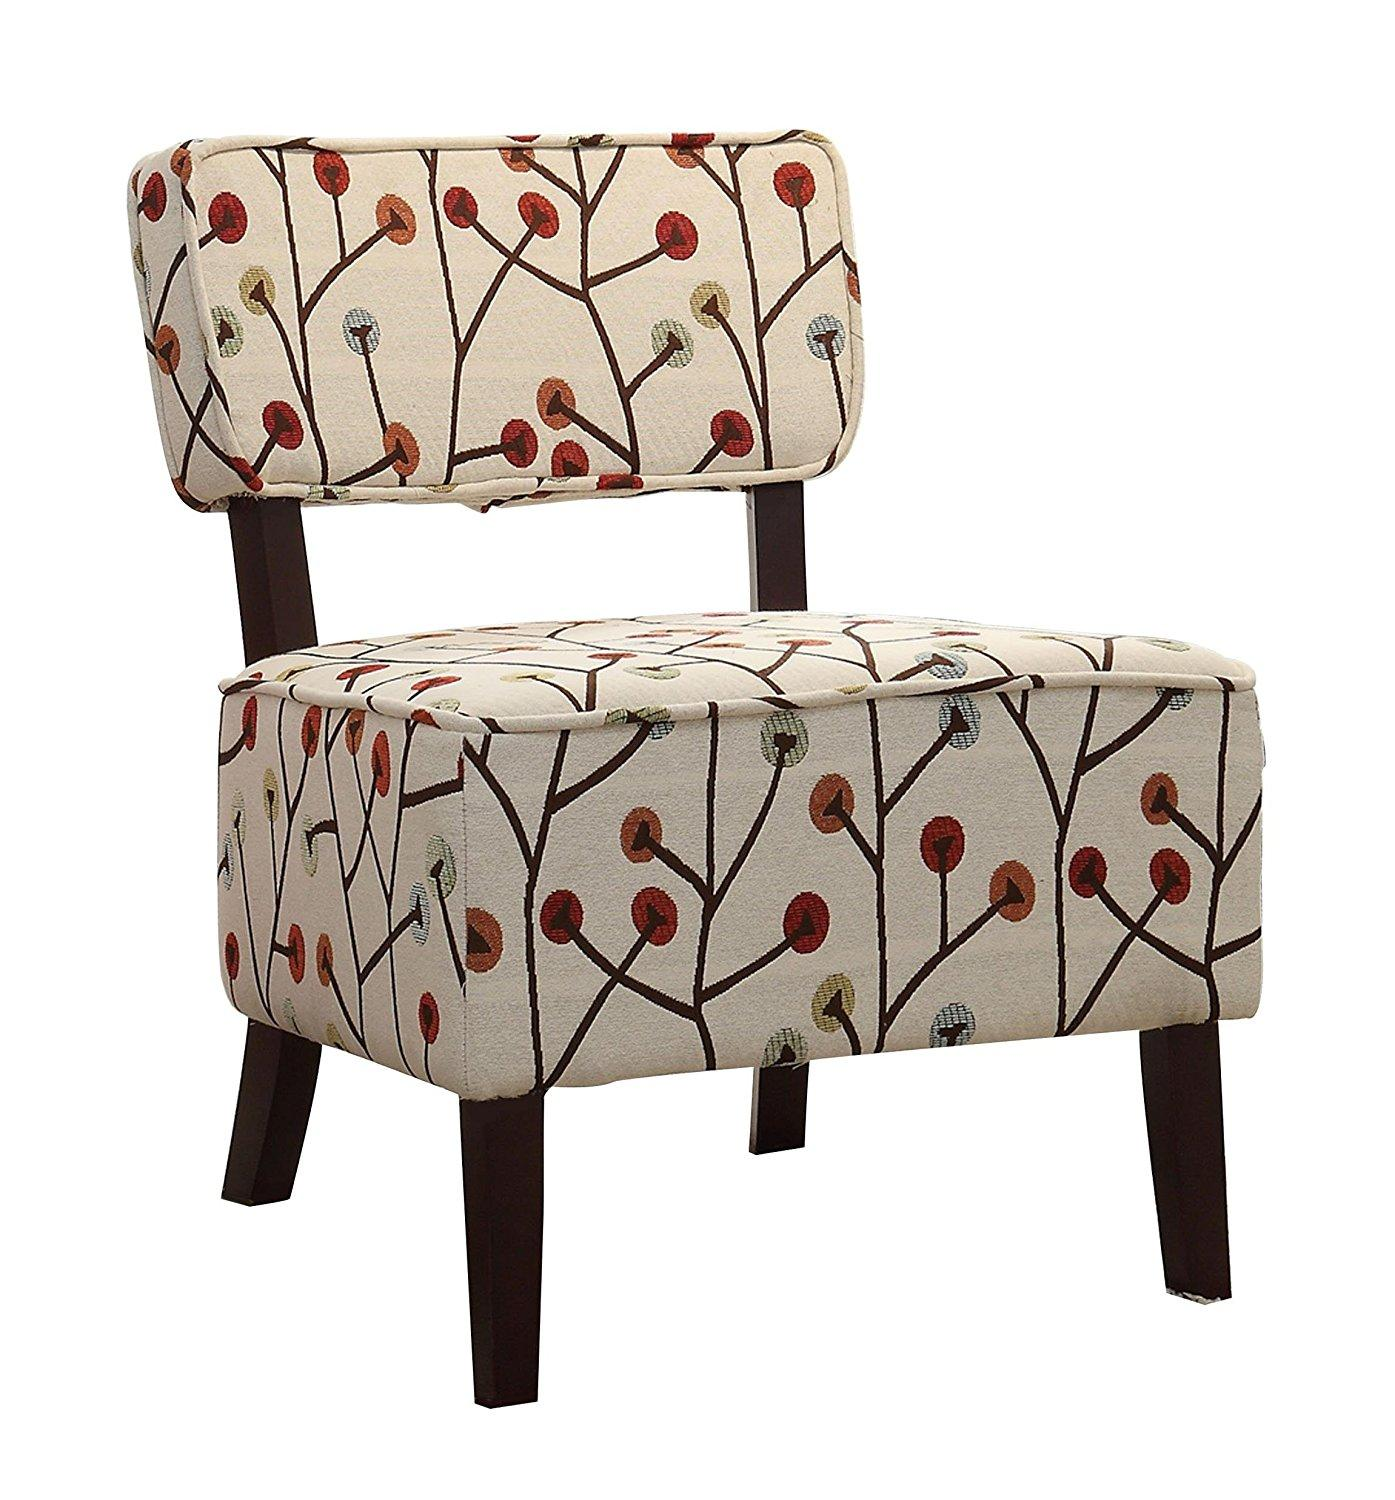 Colorful Kitchen Chairs: Amazon.com: Homelegance 1191F5S Armless Accent Chair